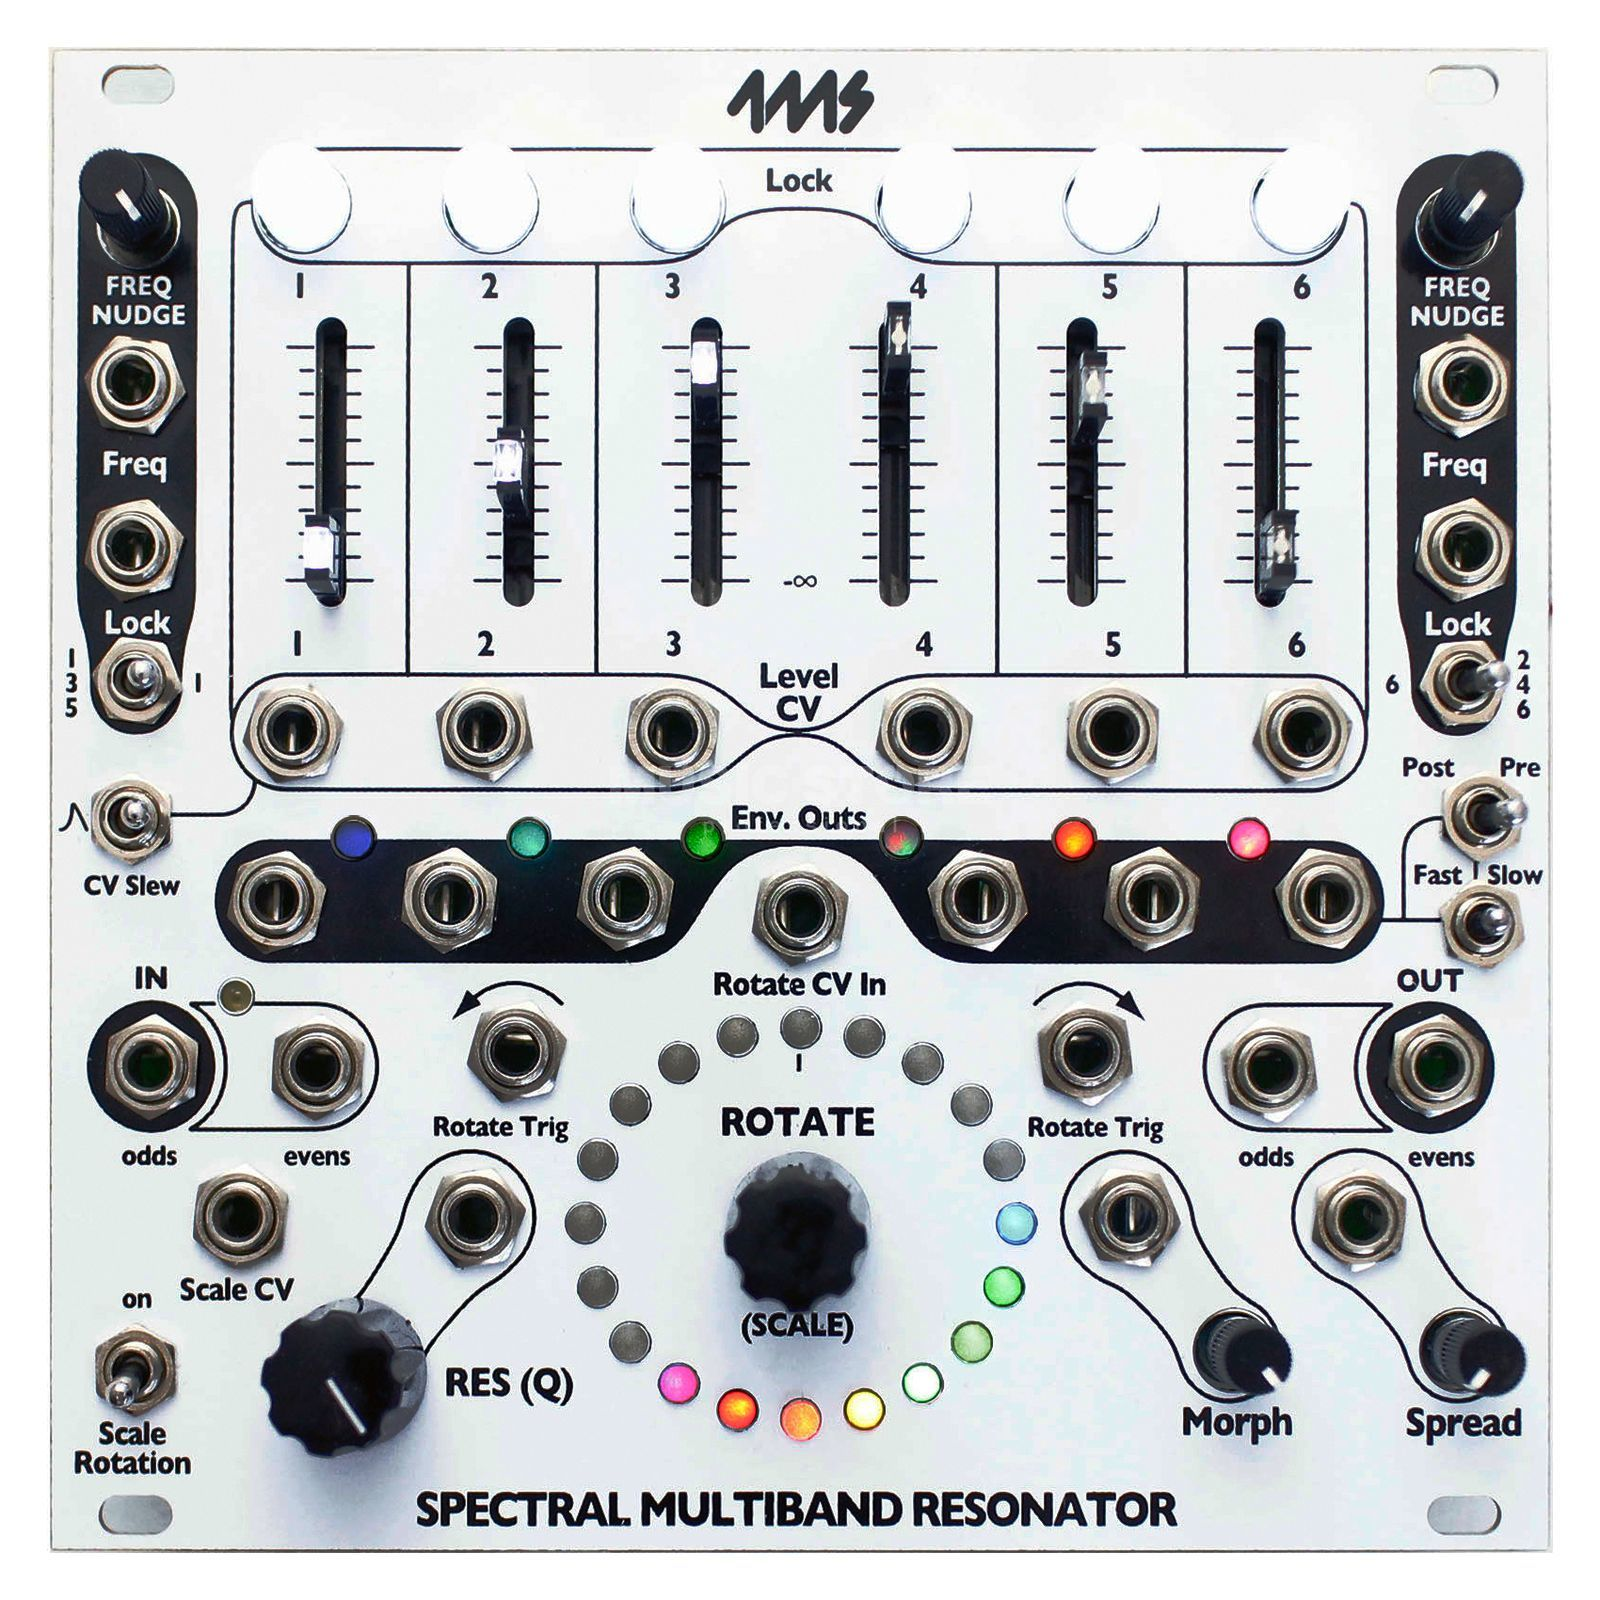 4ms Spectral Multiband Resonator Product Image